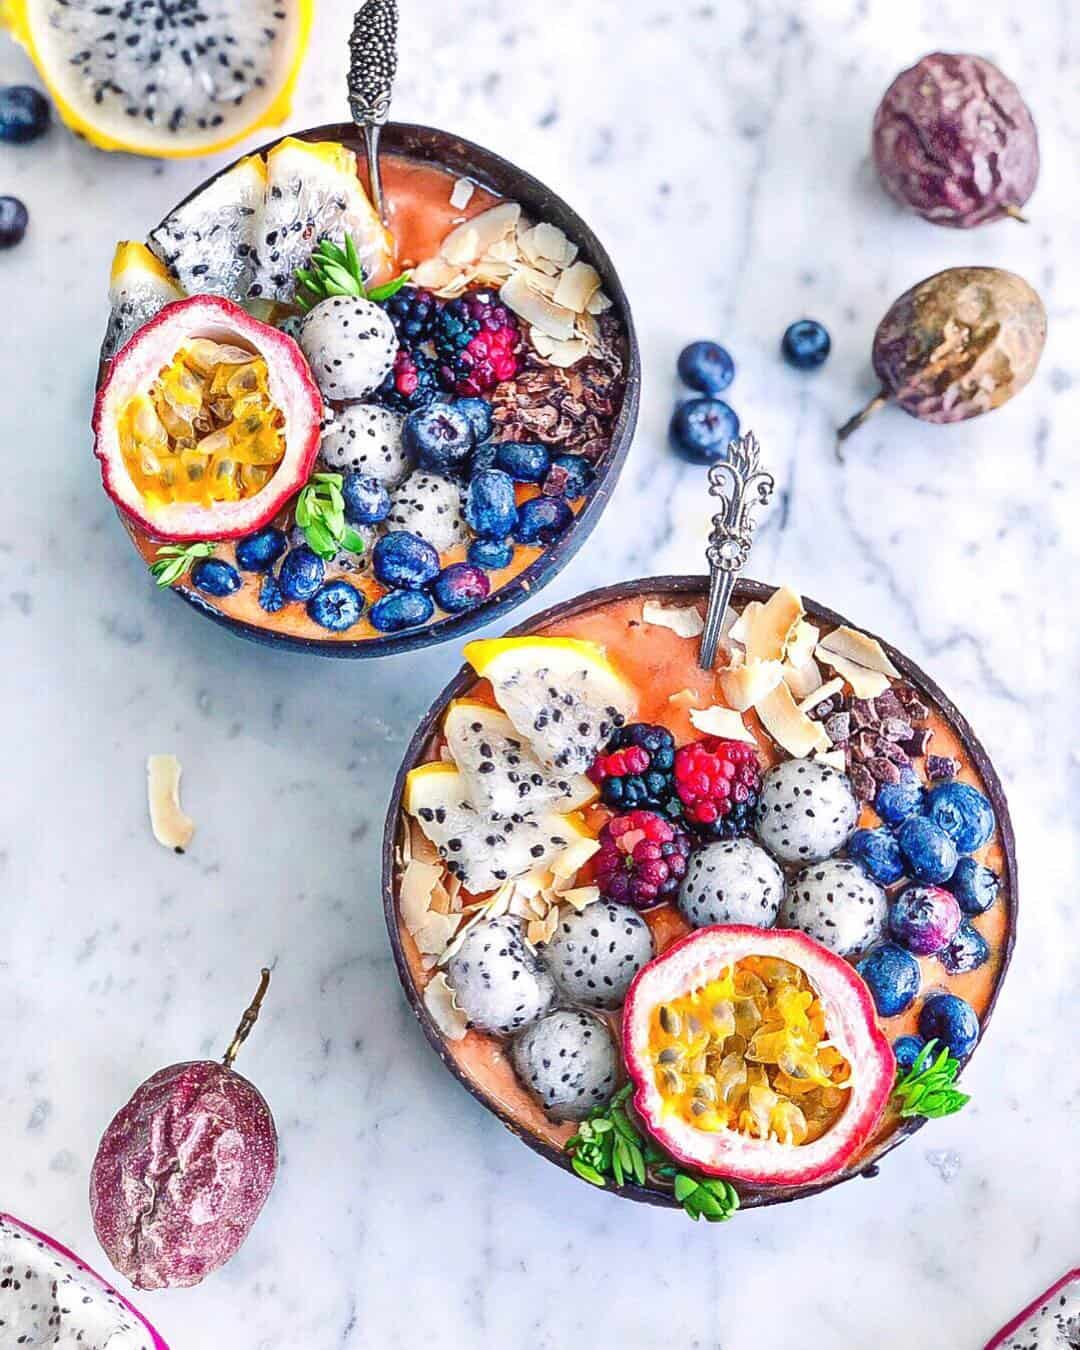 Healthy Dishes Captured Amazingly by Zuliya Khawaja